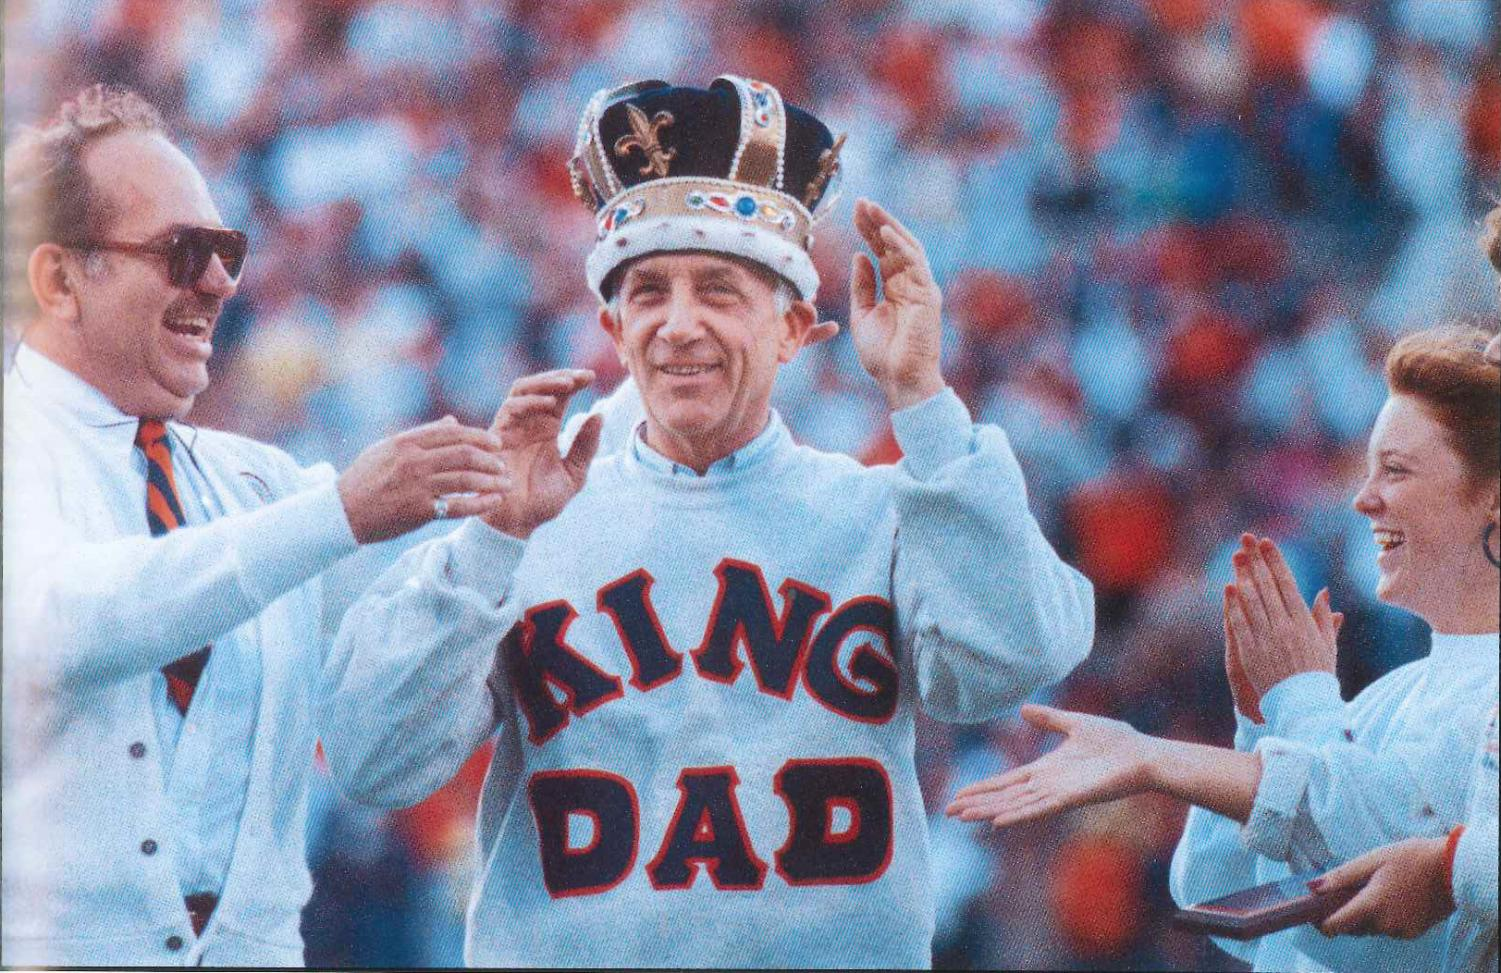 Robert Randall is crowned King Dad in 1991. This was a competition in which students voted on the best Illinois dad of that year.